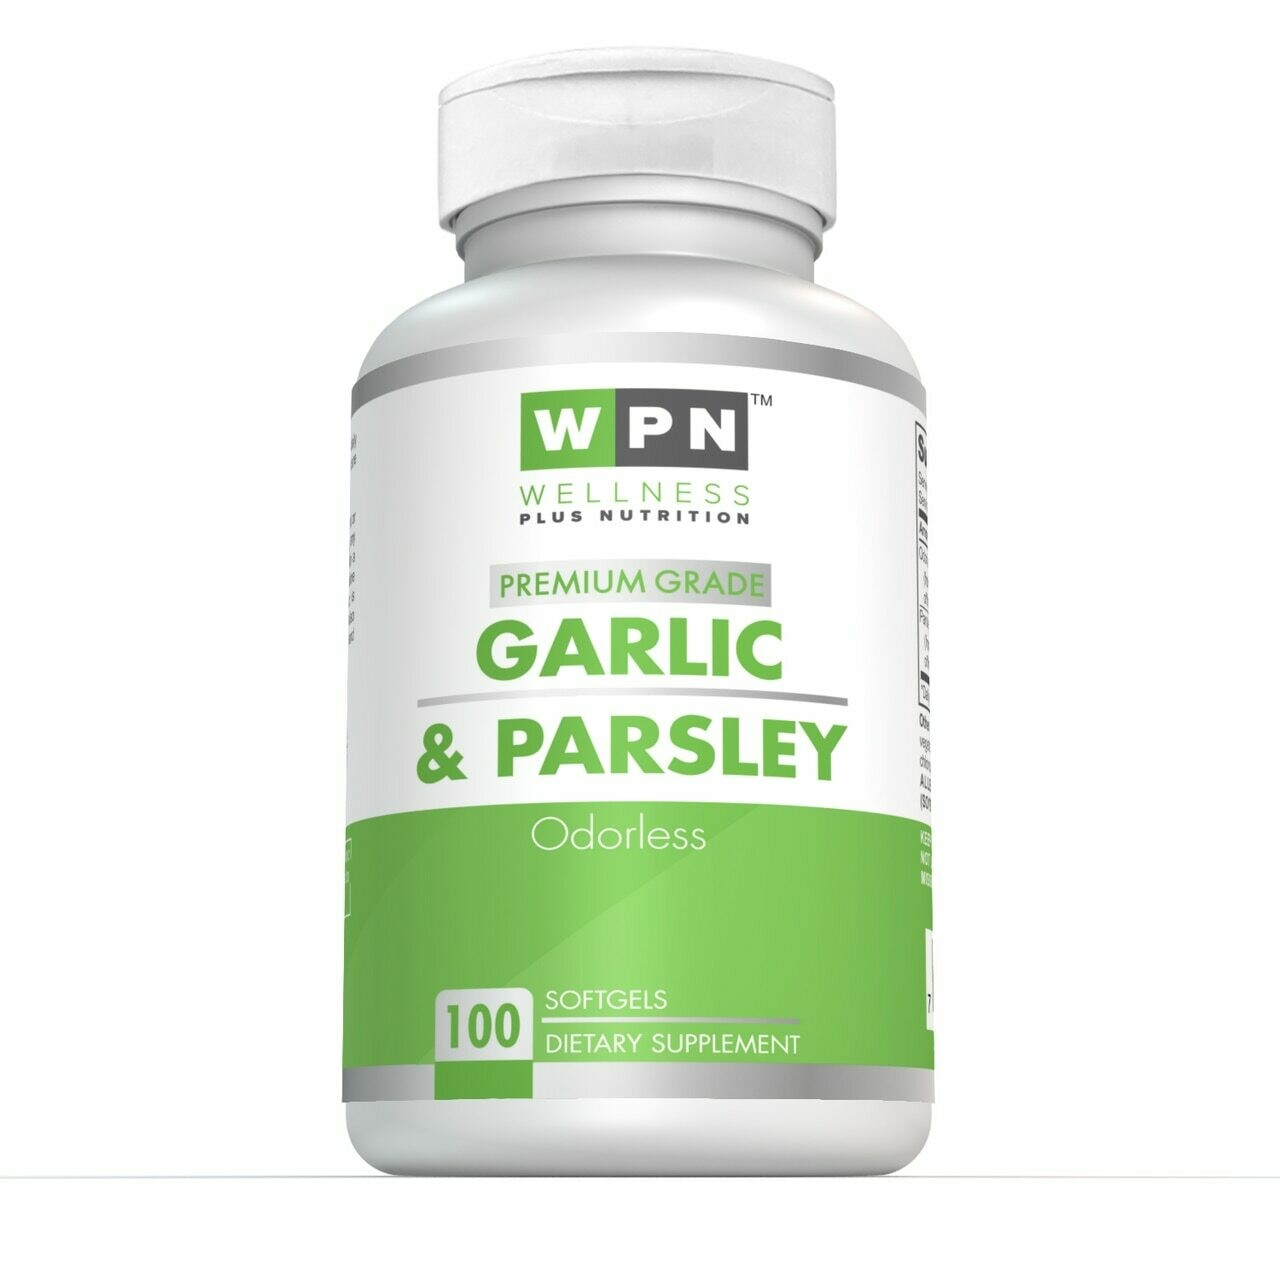 WPN Garlic & Parsley